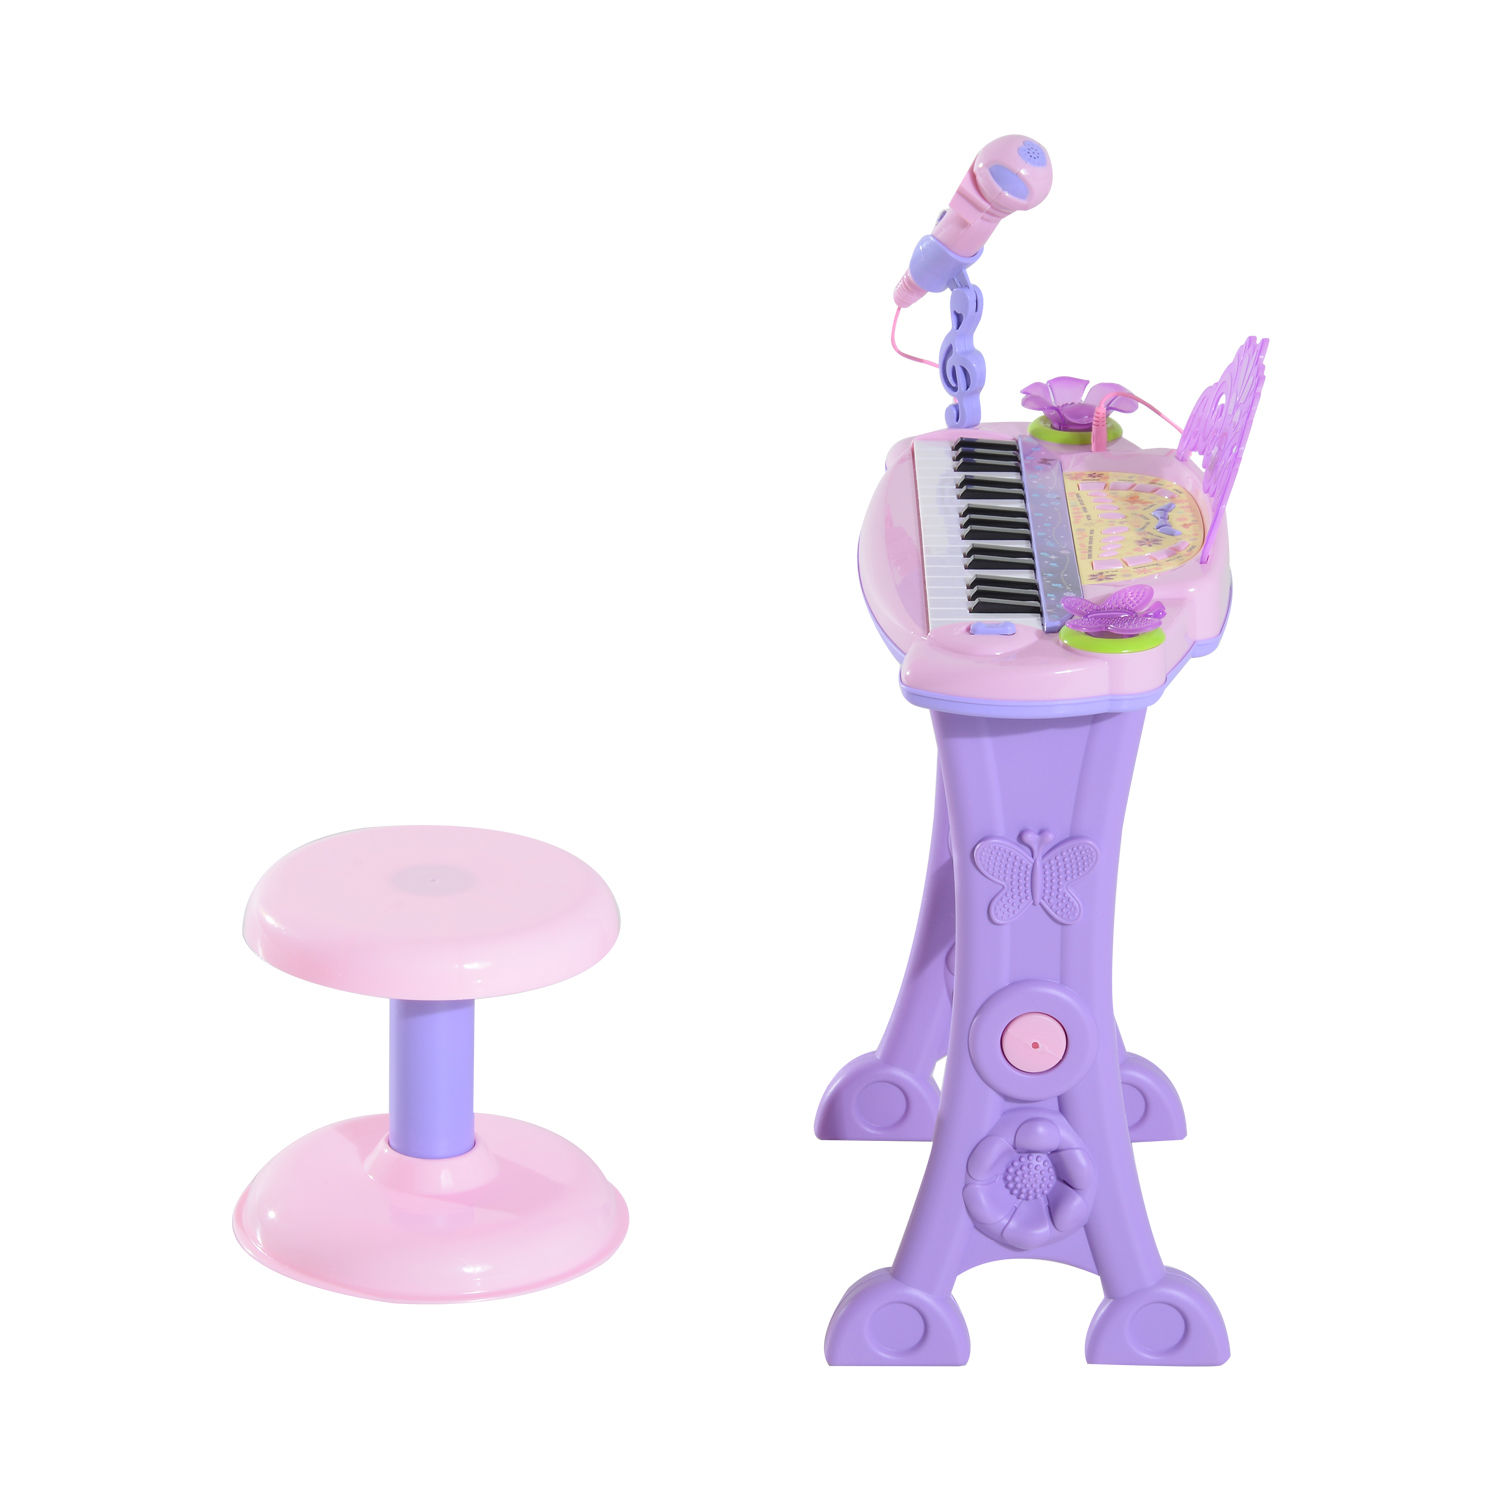 37-32-Key-Kids-Electronic-Keyboard-Mini-Grand-Piano-Stool-Microphone-Musical-Toy thumbnail 39